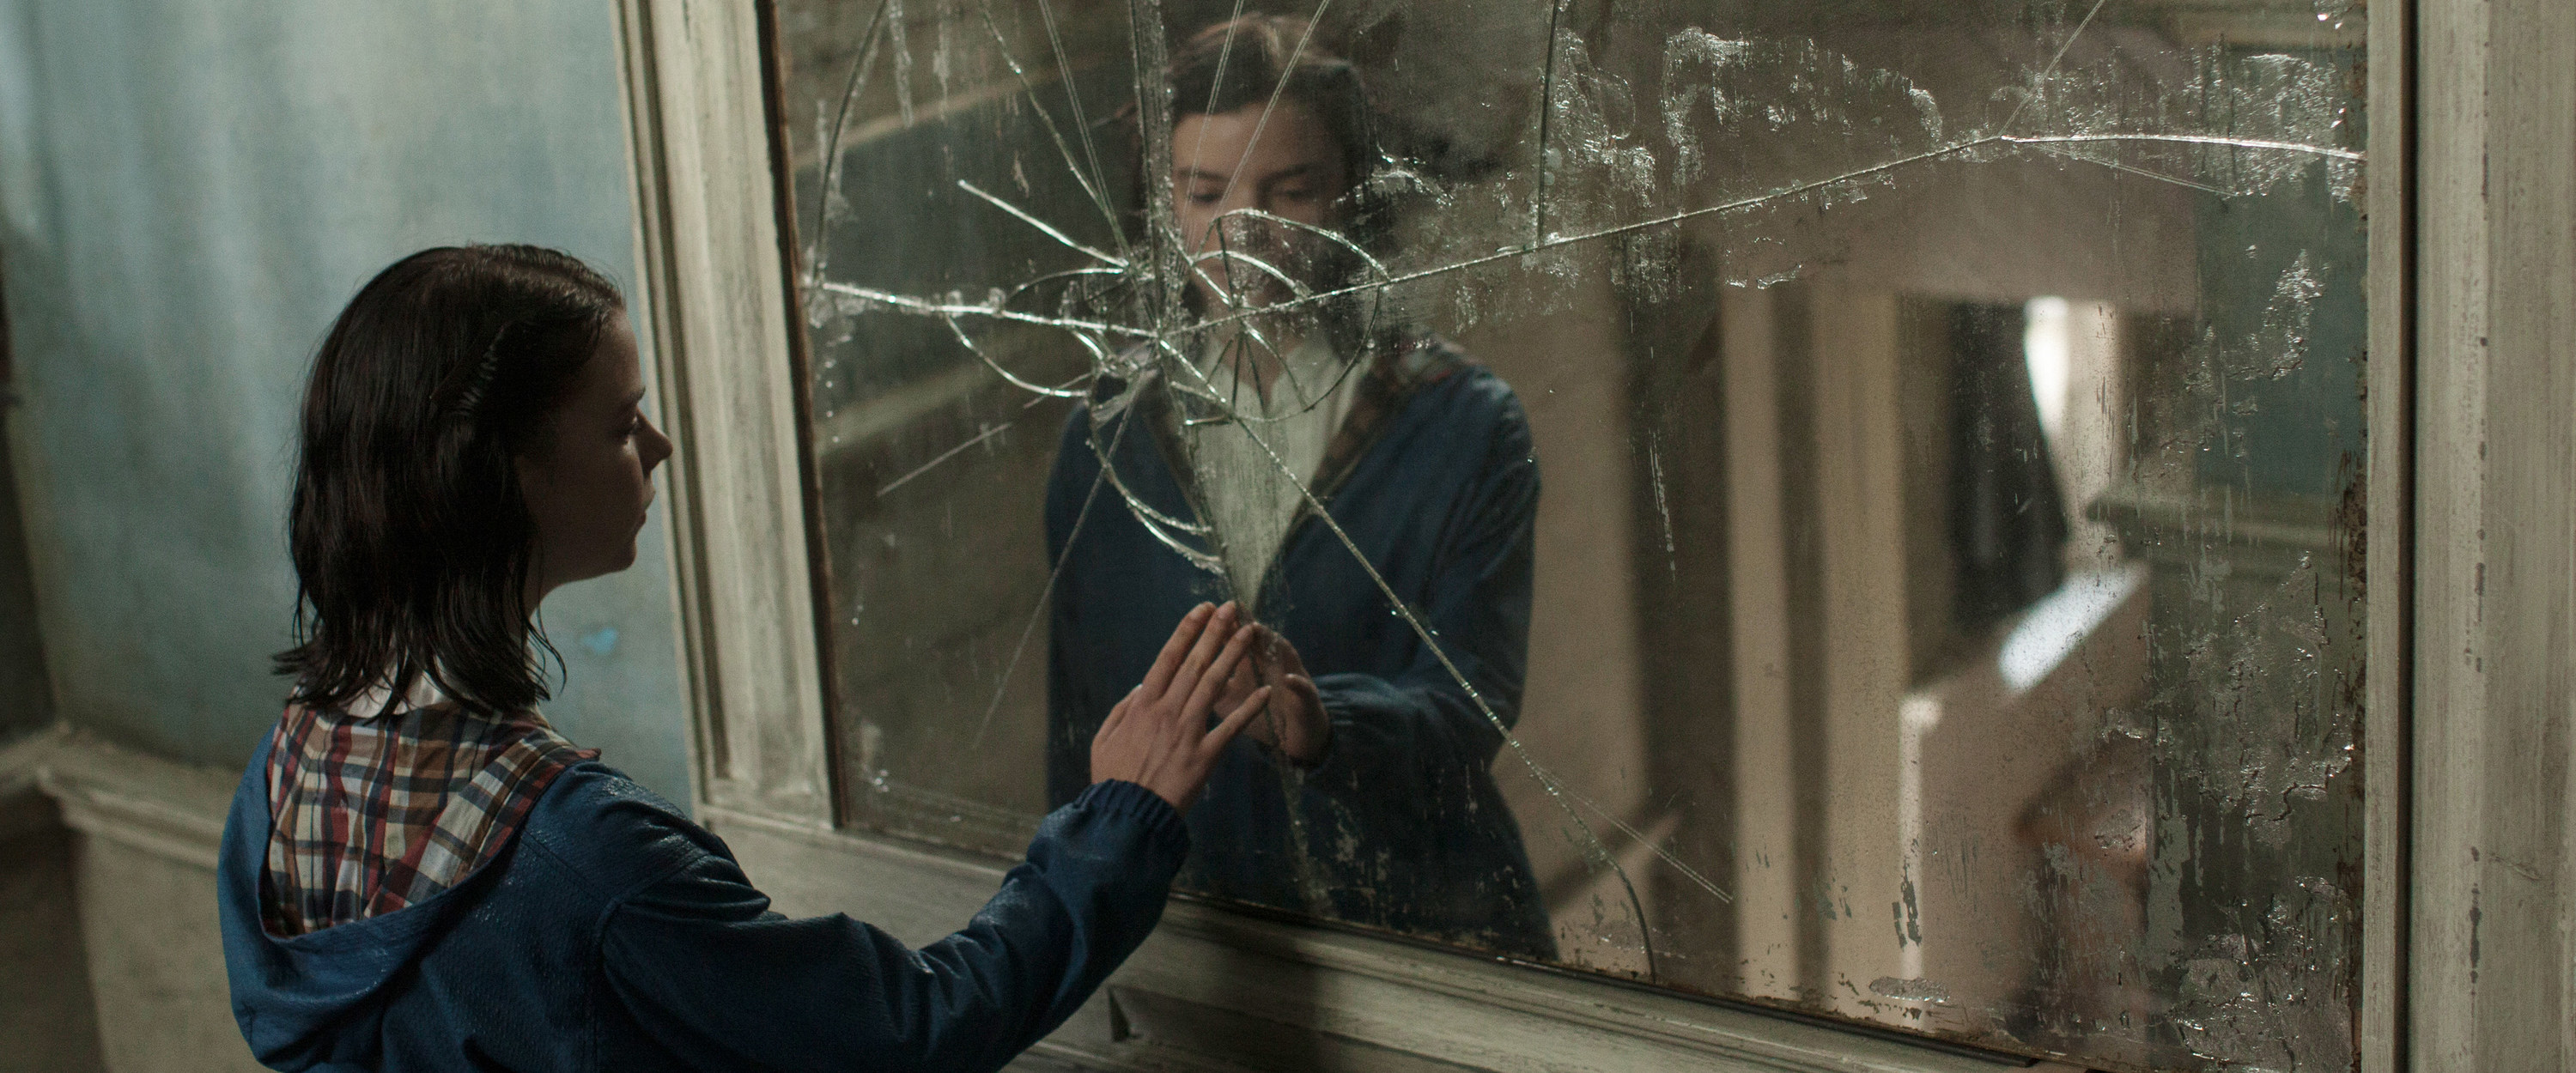 Anya as Allie touching a cracked mirror